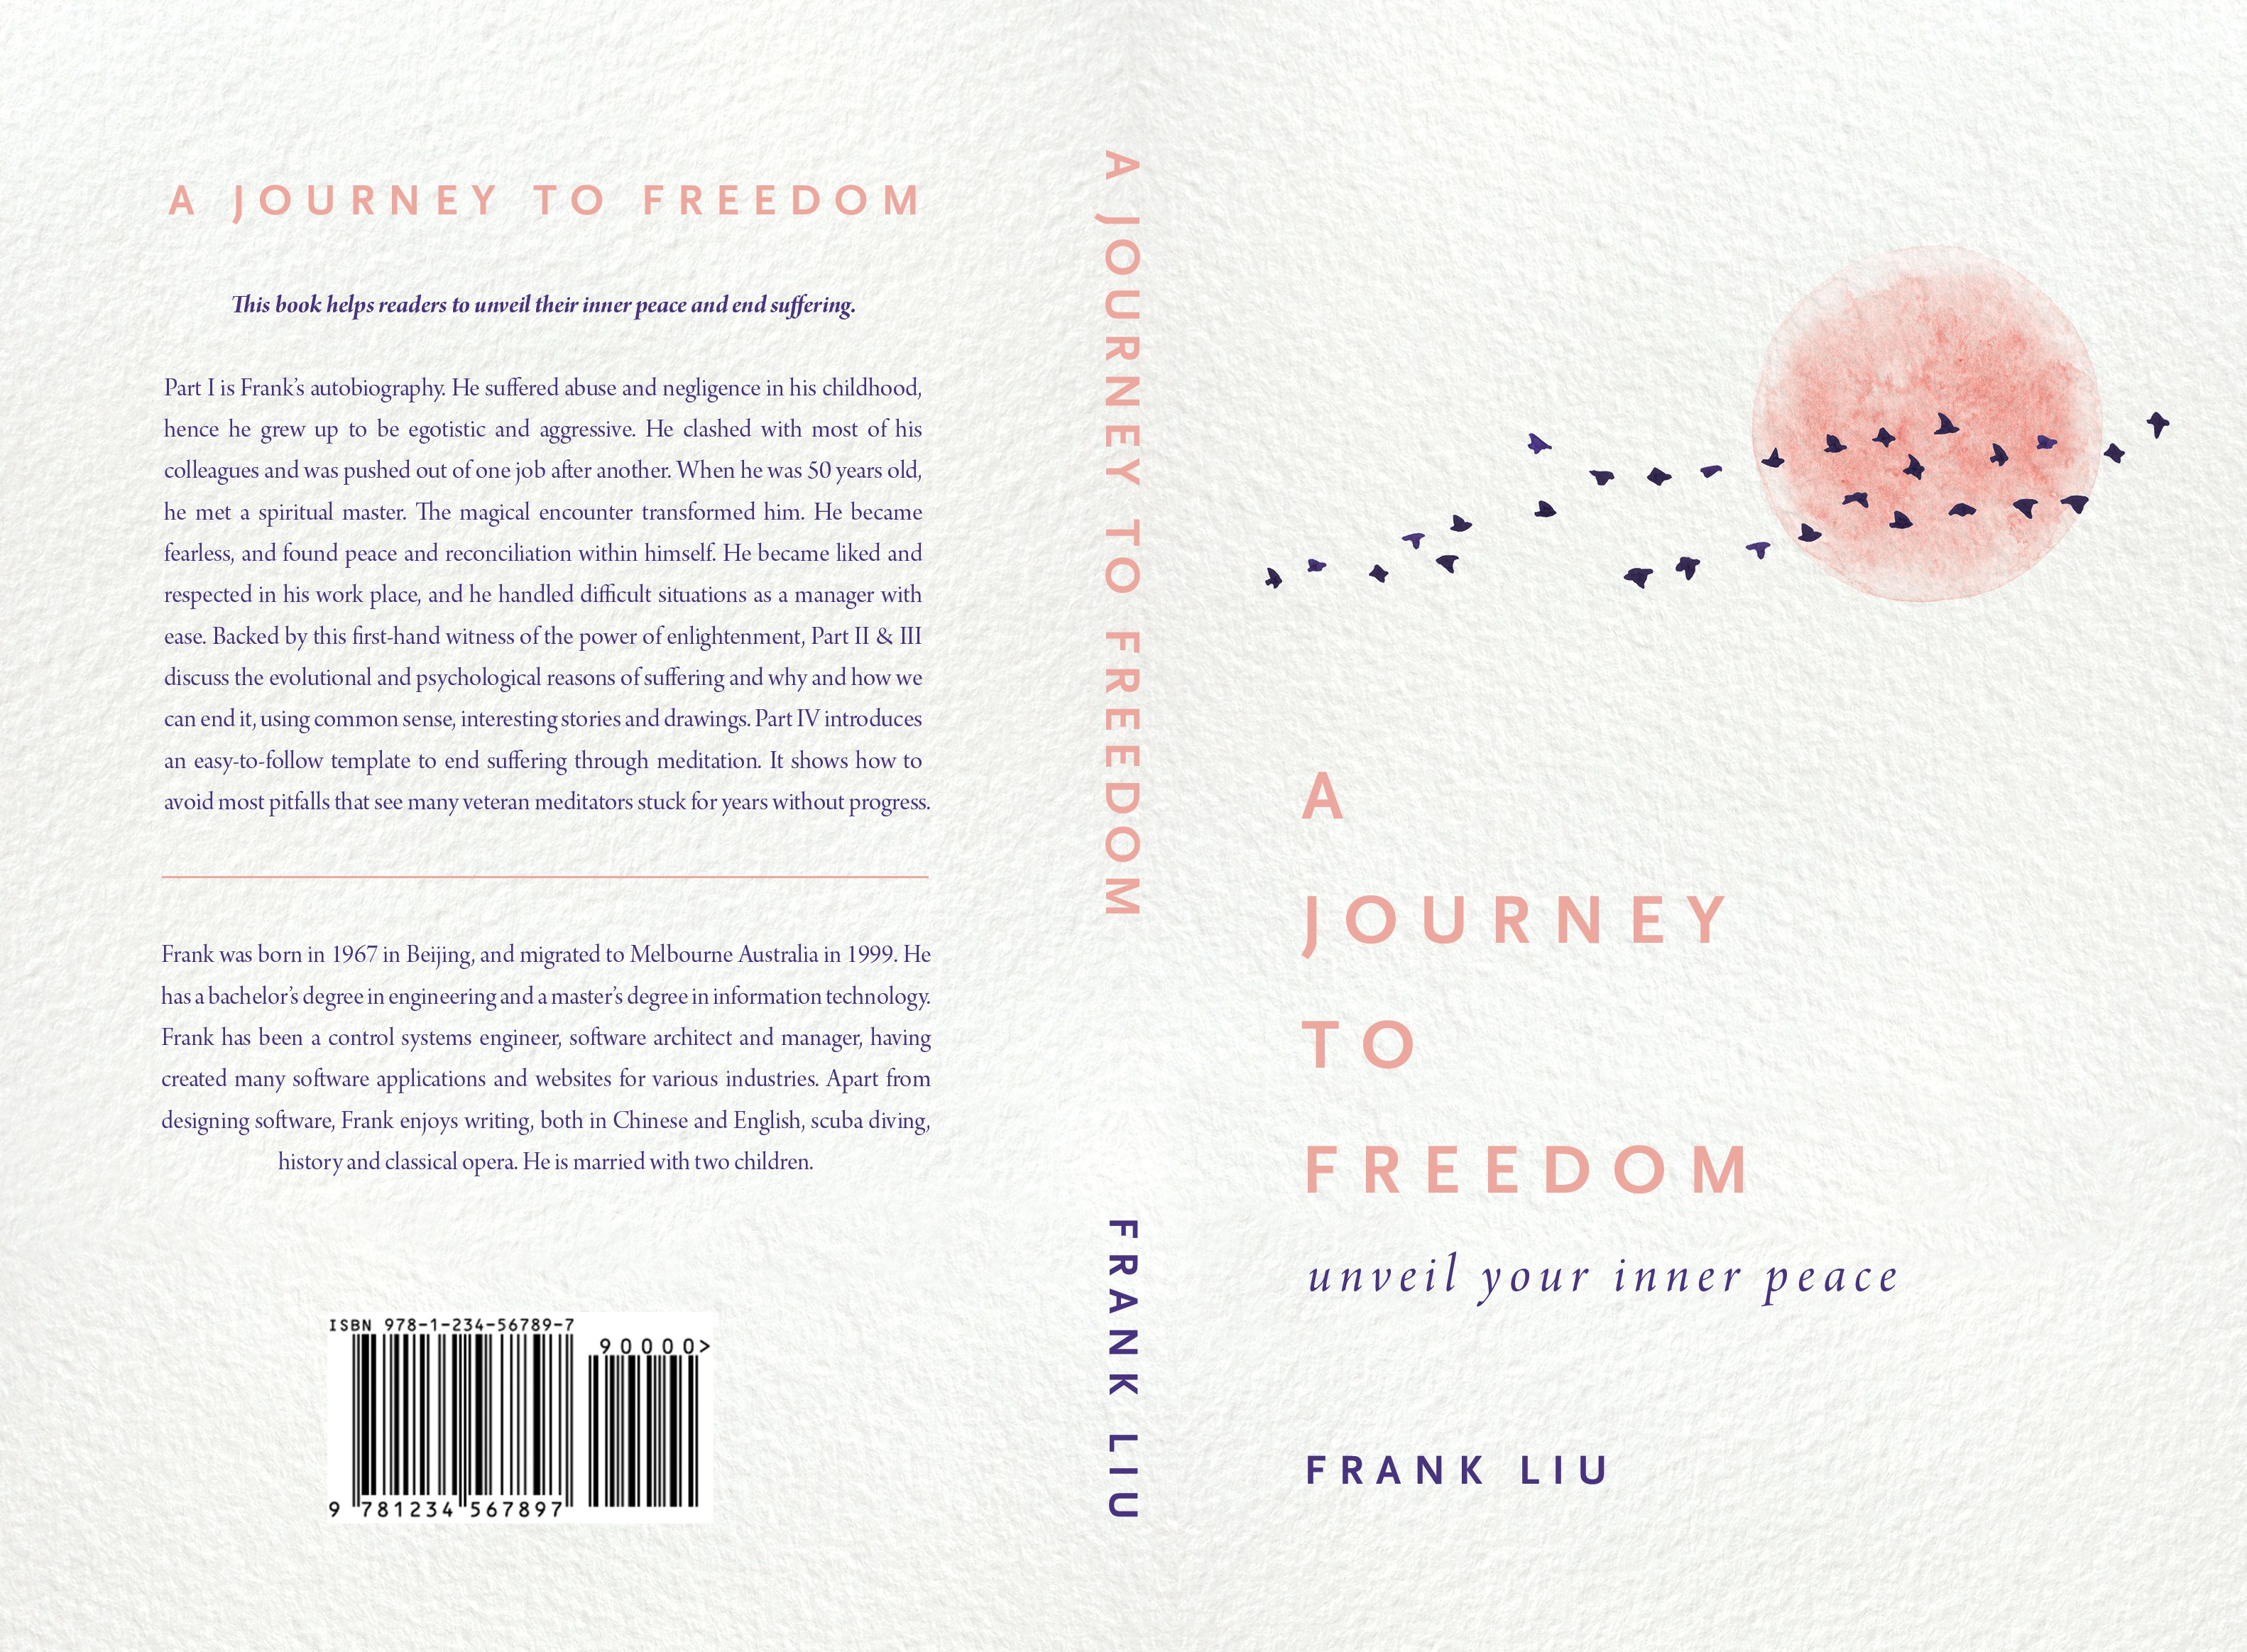 Design book cover: A JOURNEY TO FREEDOM